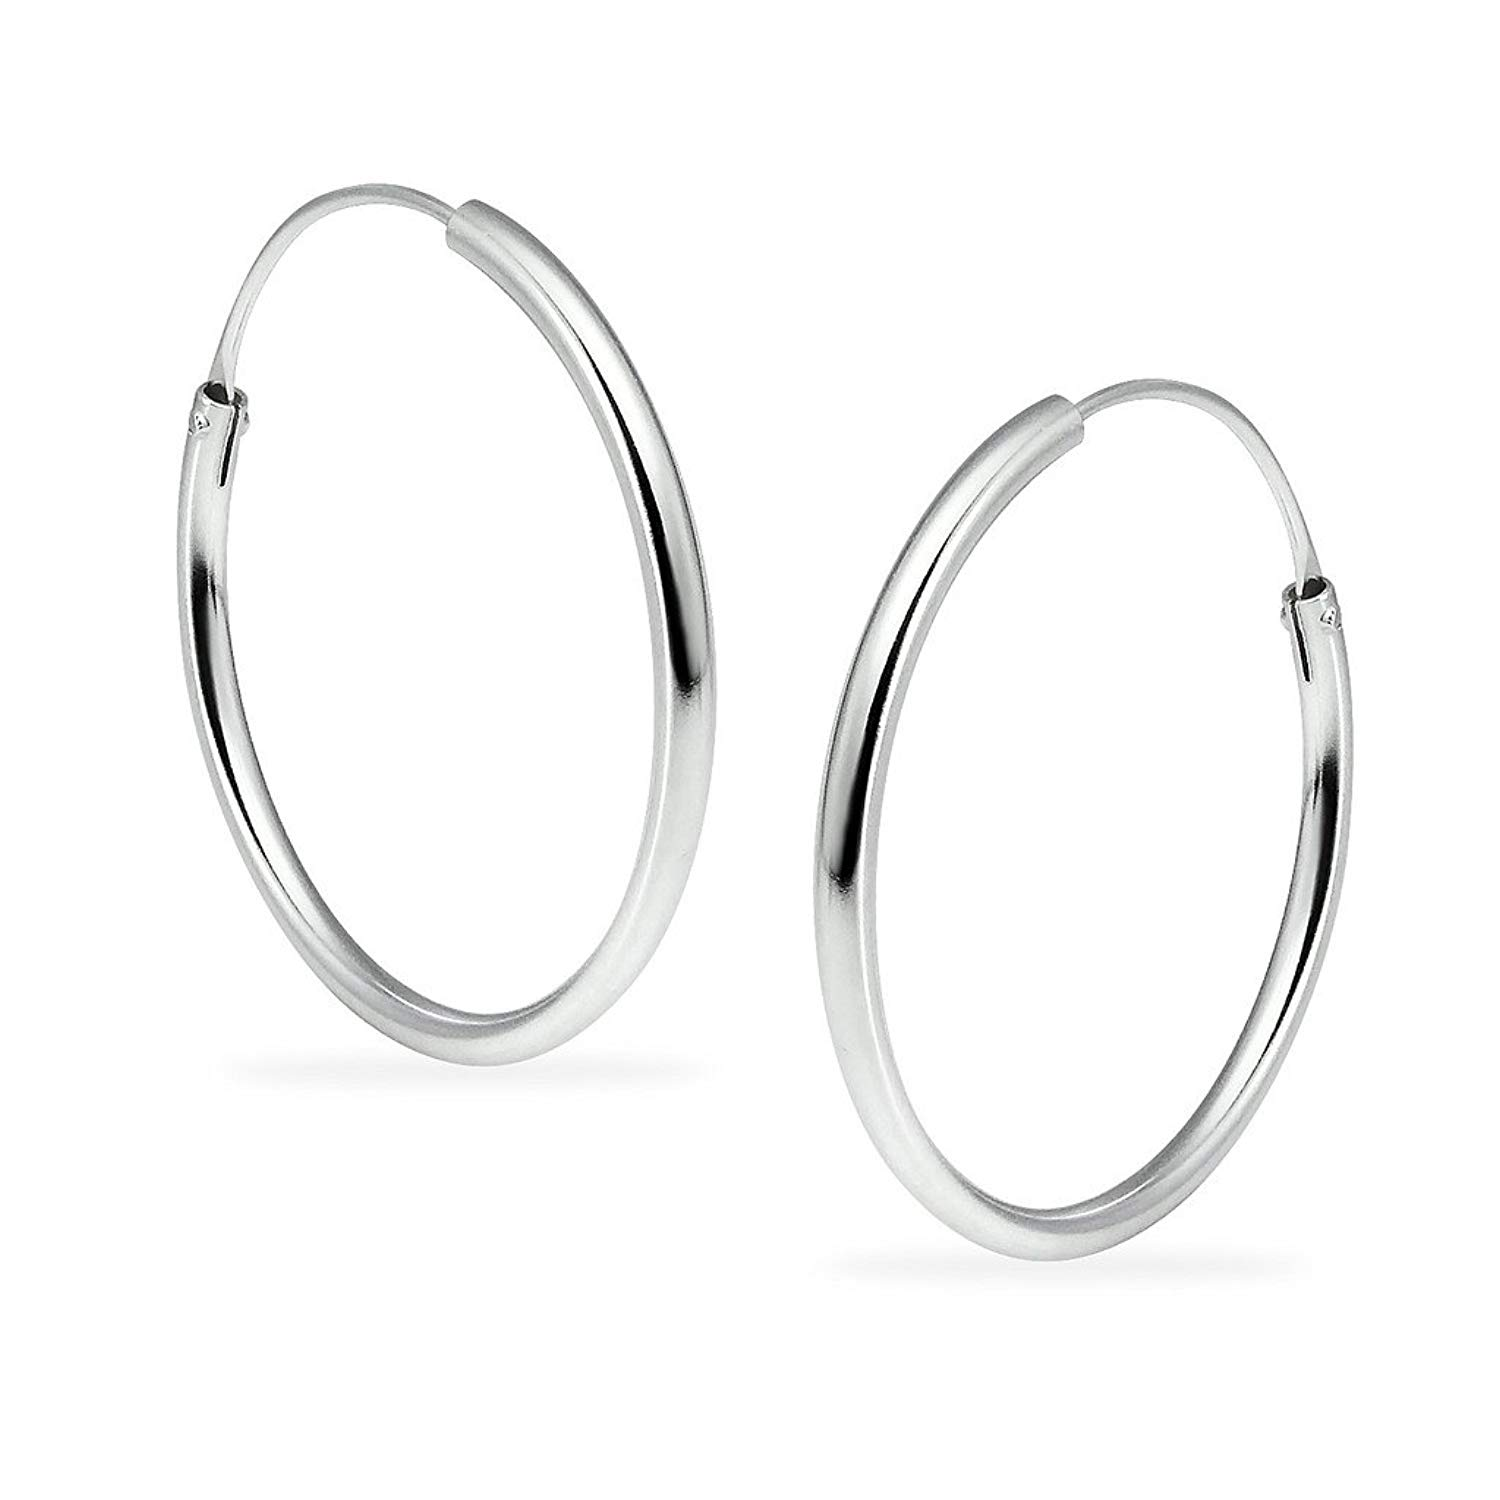 Get Quotations Sterling Silver Lightweight Circle Endless Hoop Earrings Women S 1 2mm X 24mm Orted Colors